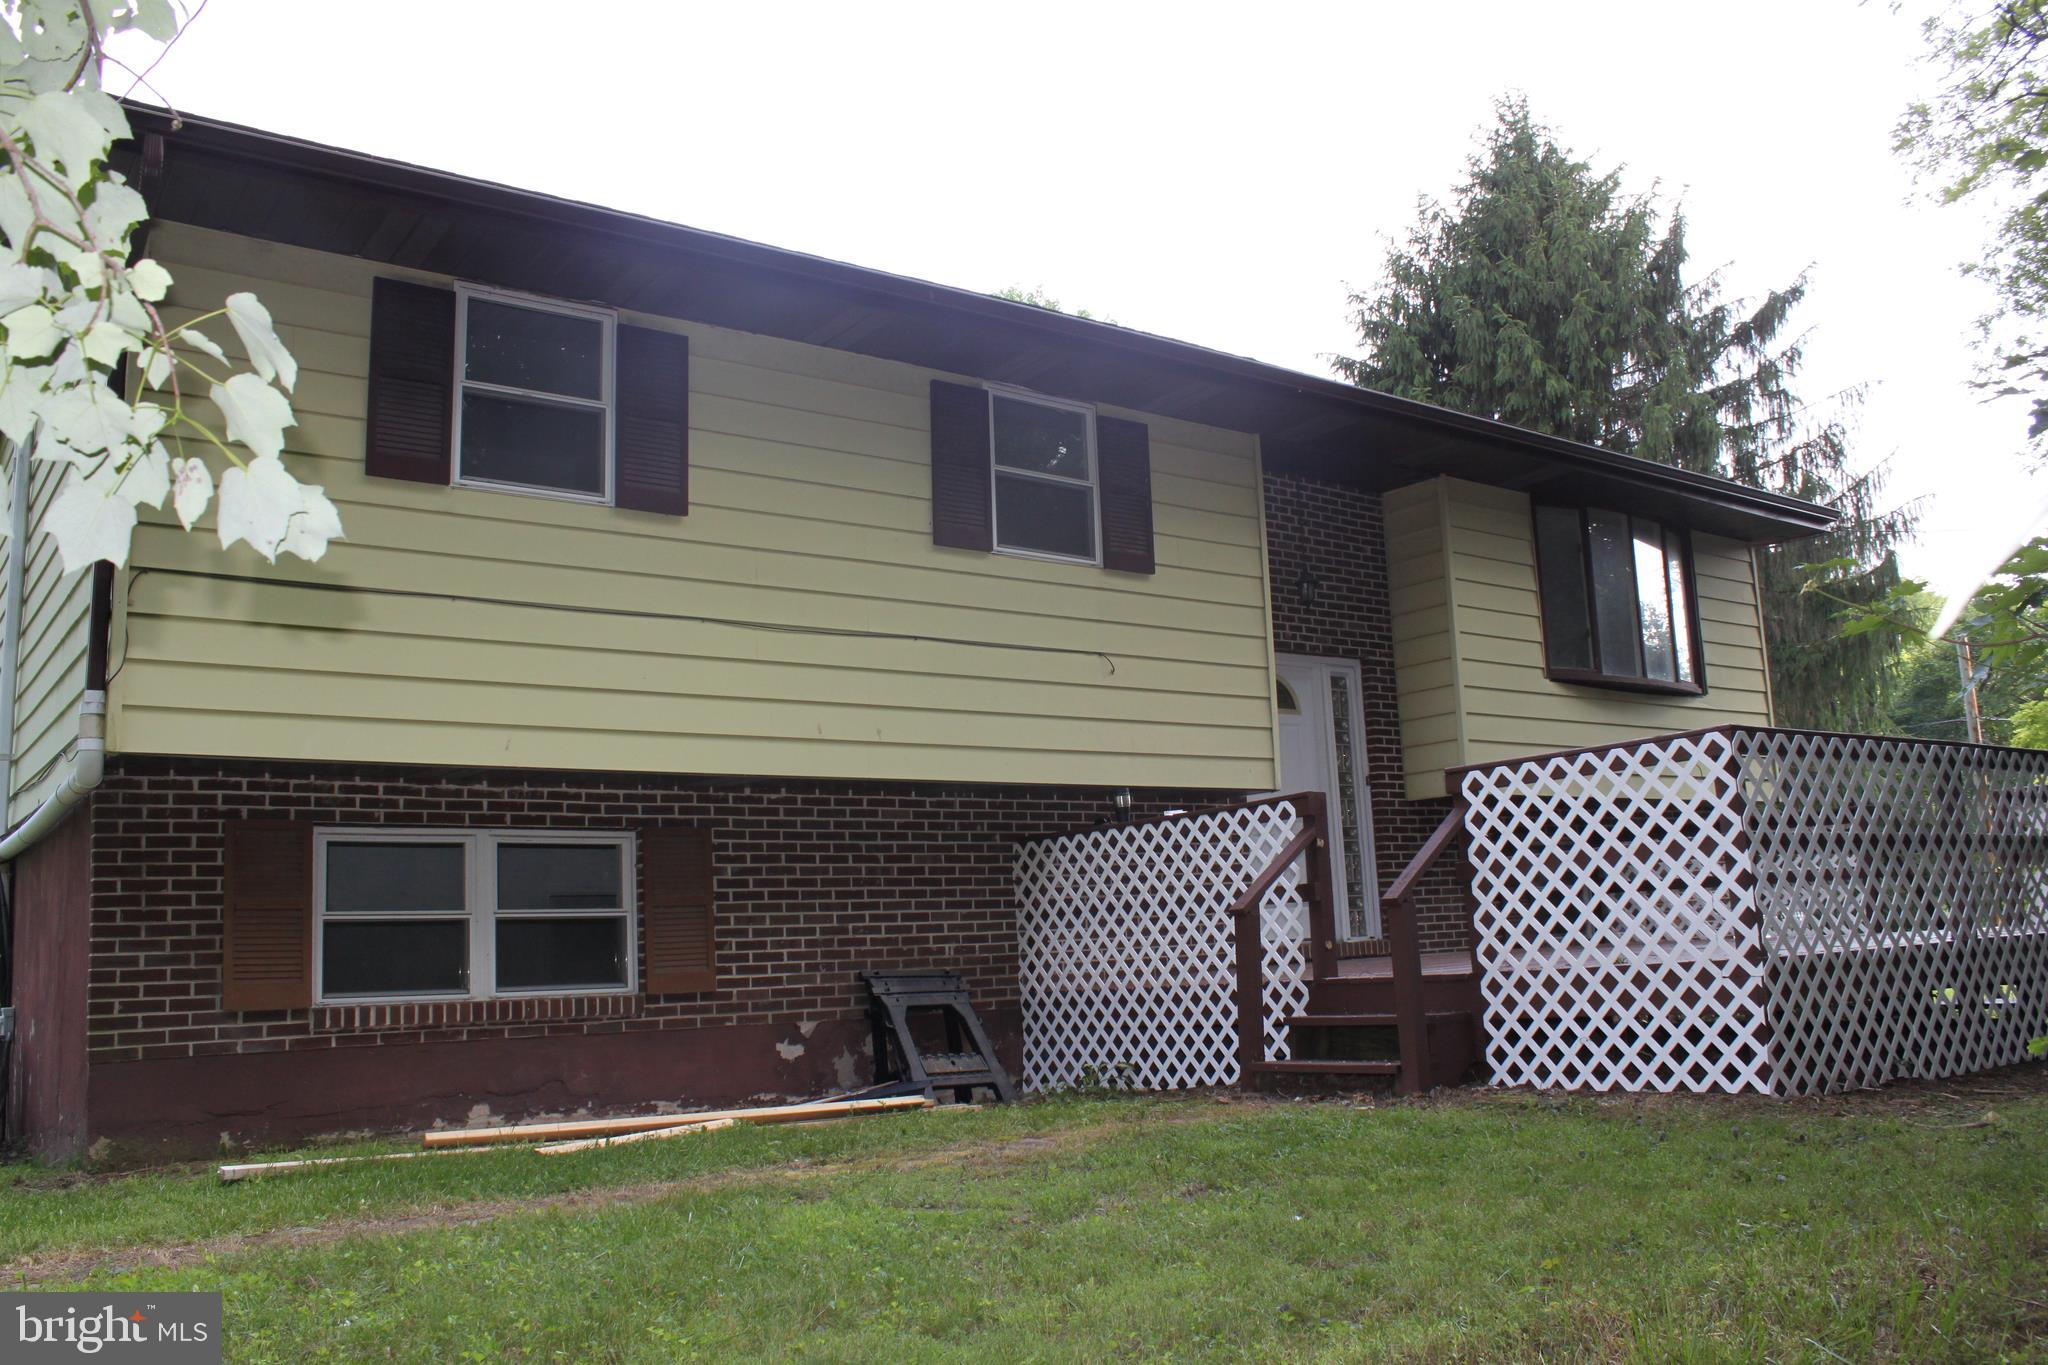 1031 CLARKS VALLEY ROAD, DAUPHIN, PA 17018